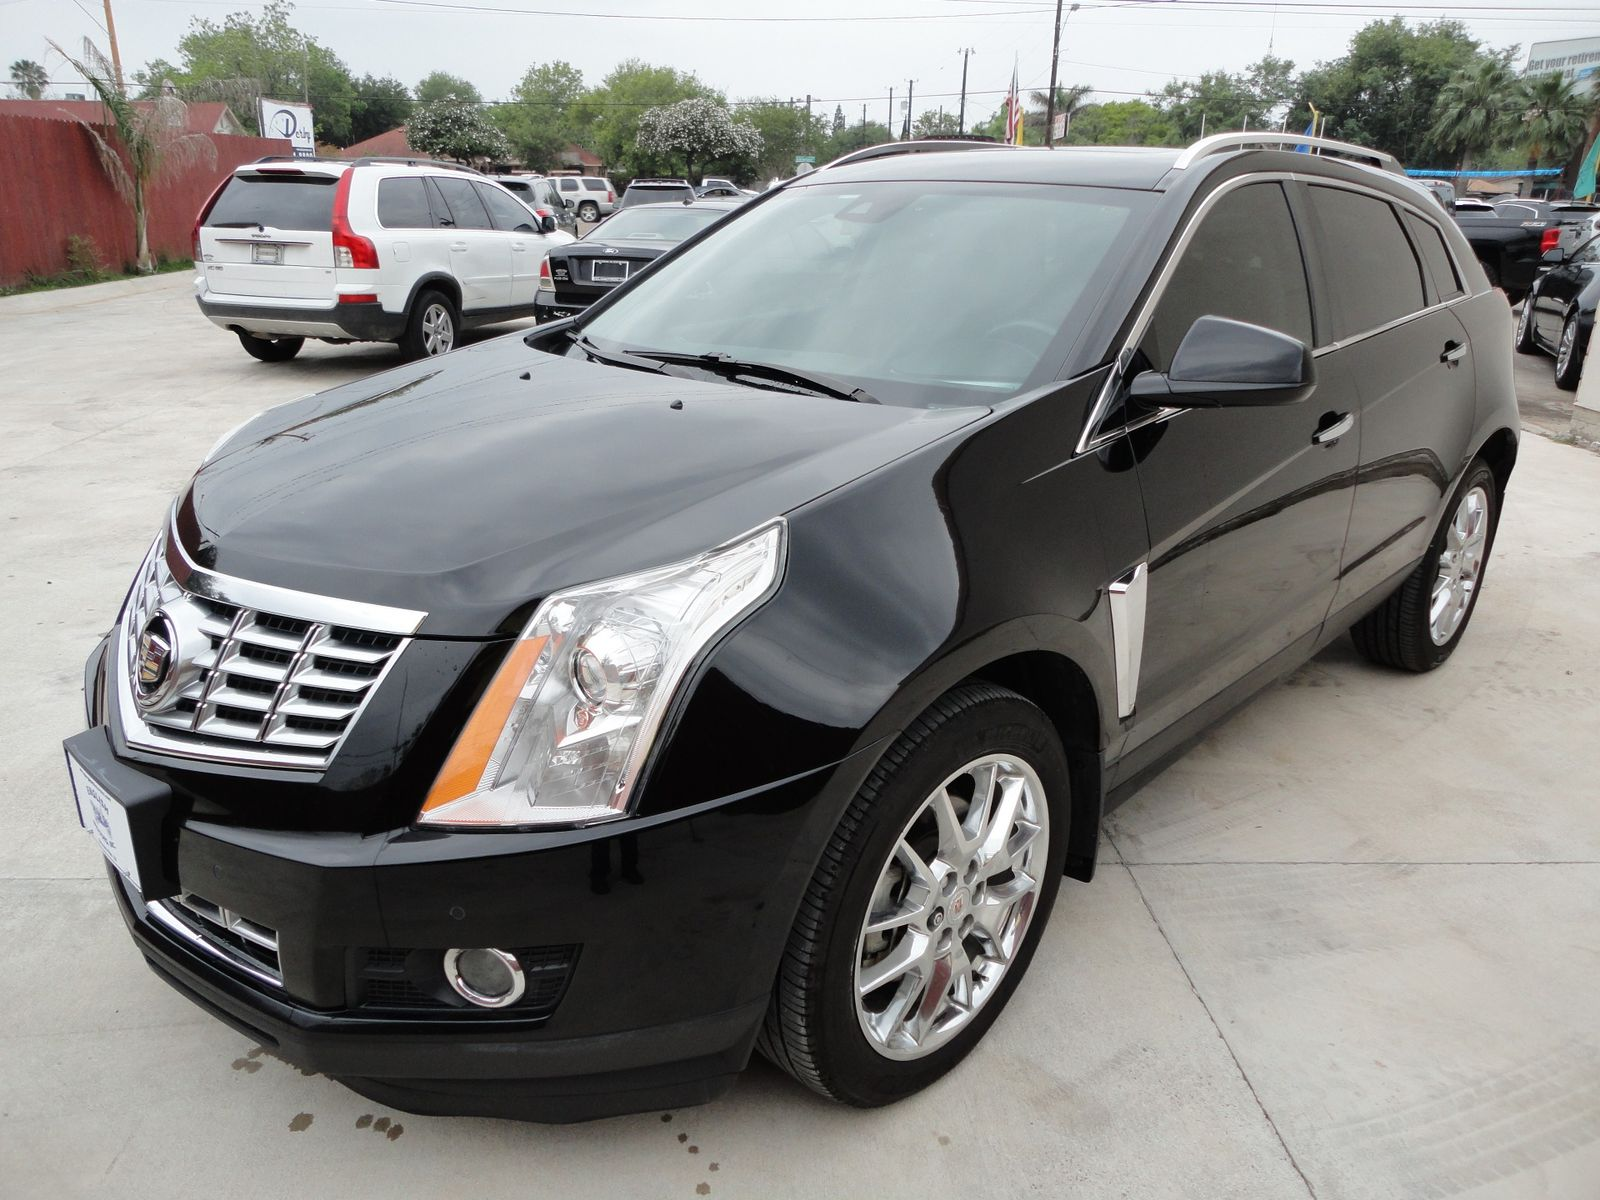 srx en fwd motor canada cadillac trunk trend suv premium reviews rating cars and